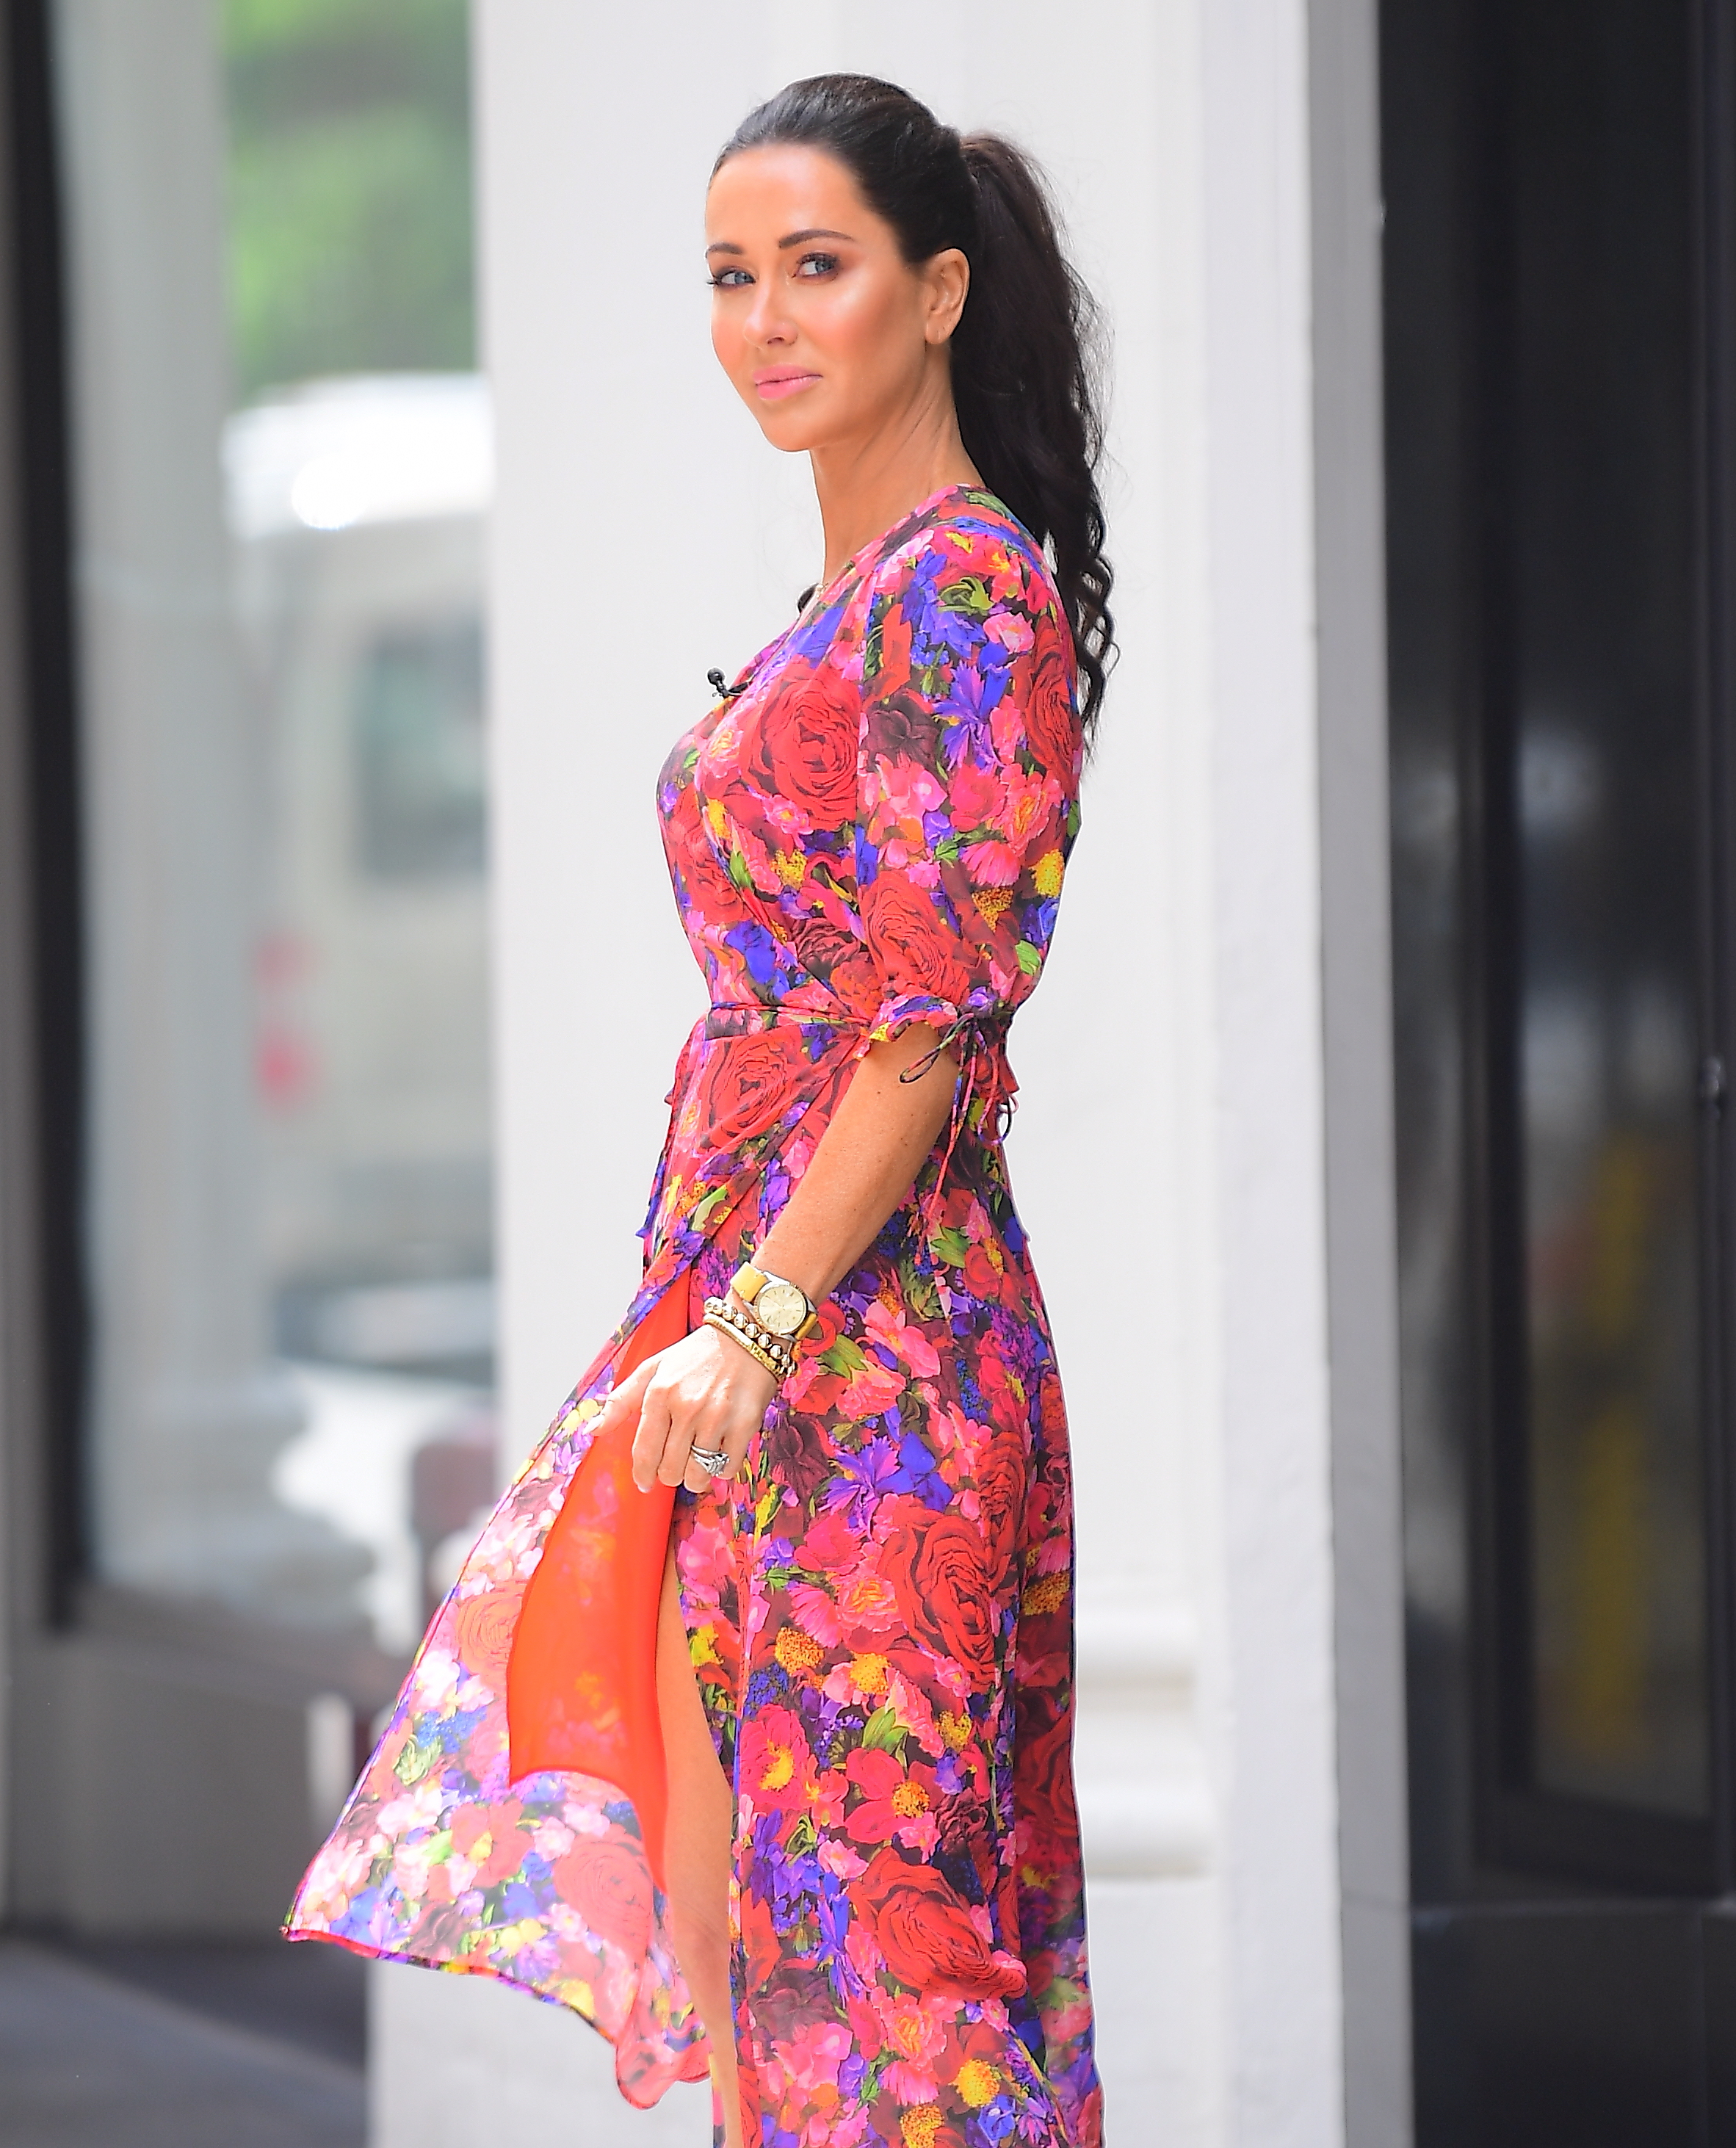 Jessica Mulroney was spotted out in NYC on Tuesday morning. Meghan Markle's stylist BFF filmed an interview of her own in Chelsea, looking amazing in a flowing Floral dress. Cameras surrounded her as she got her makeup touched up before filming the segment. Pictured: Jessica Mulroney Ref: SPL5097176 110619 NON-EXCLUSIVE Picture by: DIGGZY / SplashNews.com Splash News and Pictures Los Angeles: 310-821-2666 New York: 212-619-2666 London: 0207 644 7656 Milan: 02 4399 8577 photodesk@splashnews.com World Rights, No Portugal Rights